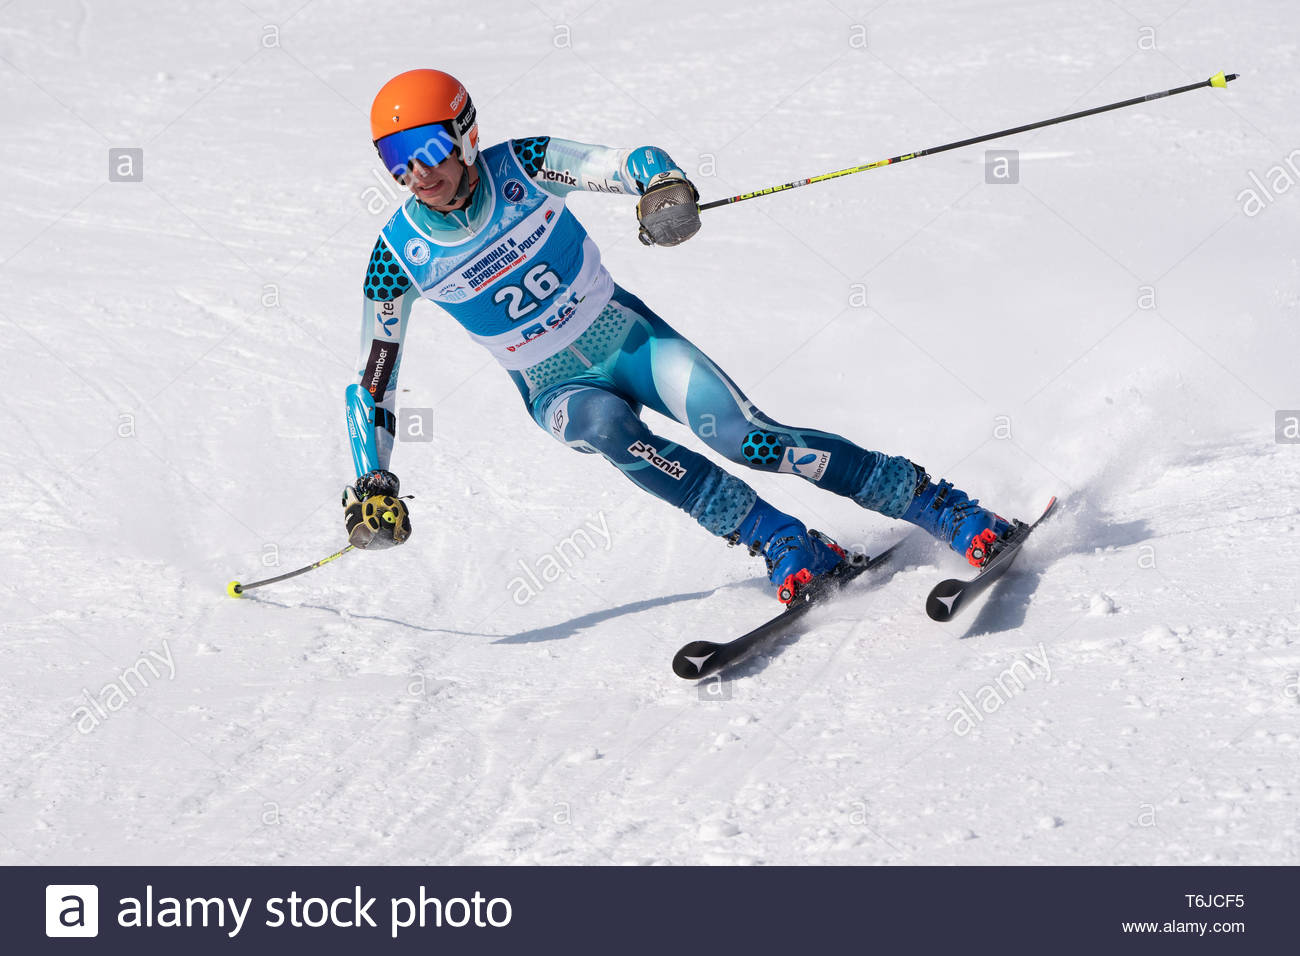 KAMCHATKA PENINSULA, RUSSIA - APR 1, 2019: Mountain skier Lomovskikh Matvey (St. Petersburg) skiing down slope. Russian Alpine Skiing Cup, Internation - Stock Image